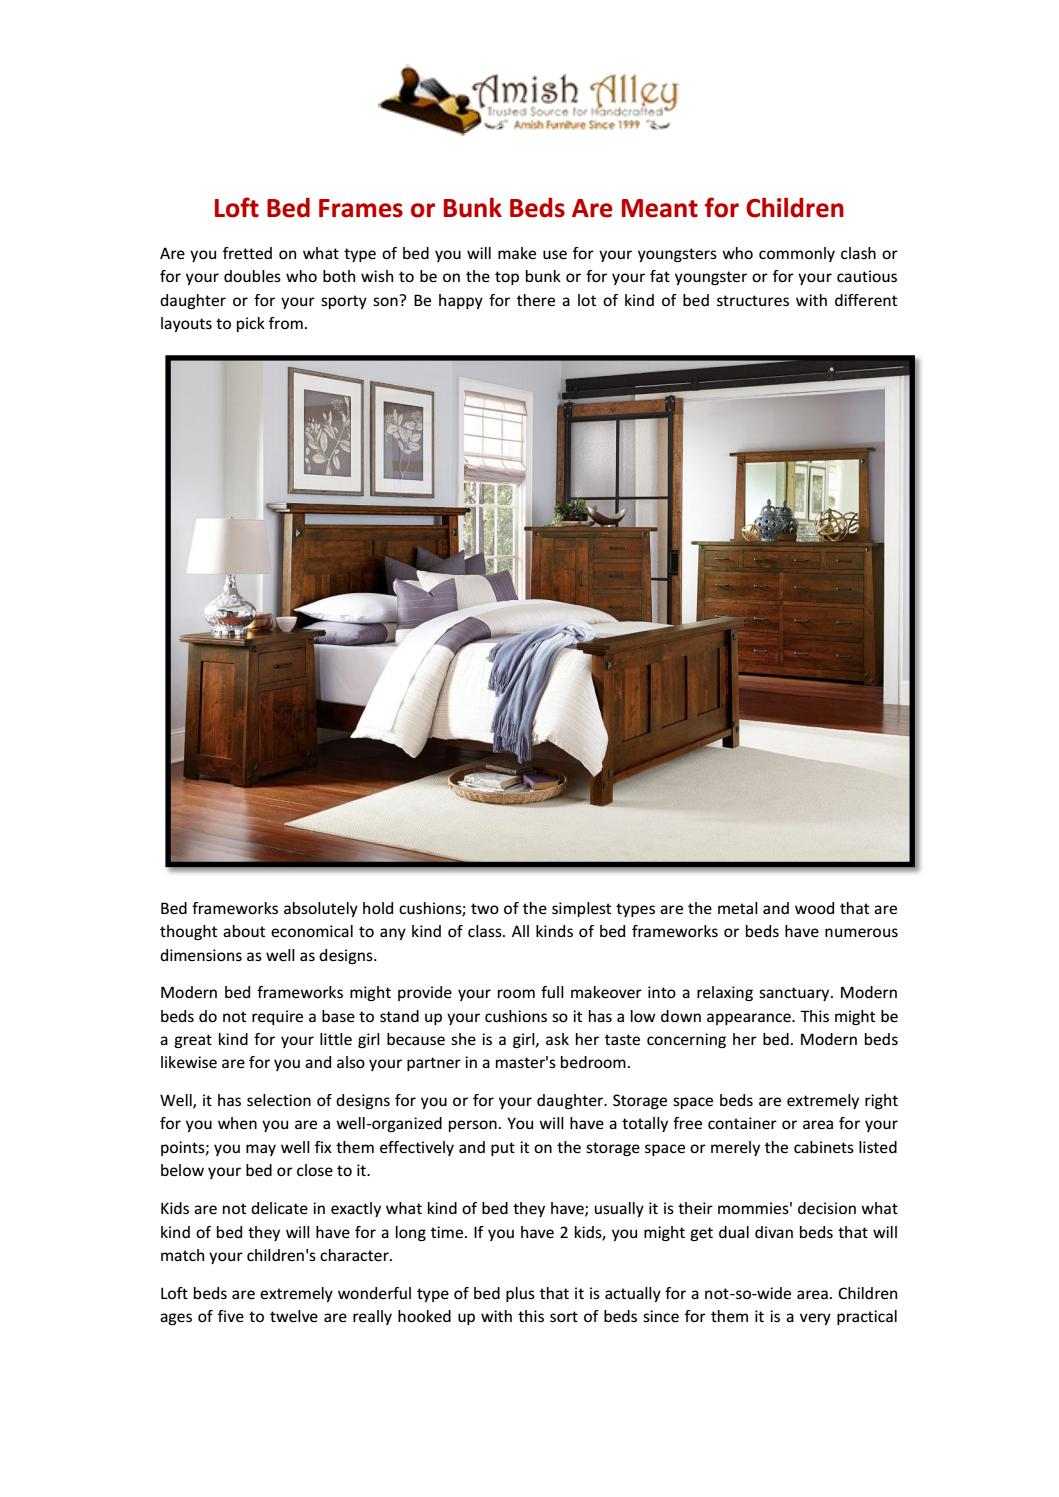 Loft Bed Frames Or Bunk Beds Are Meant For Children By Amish Alley Issuu